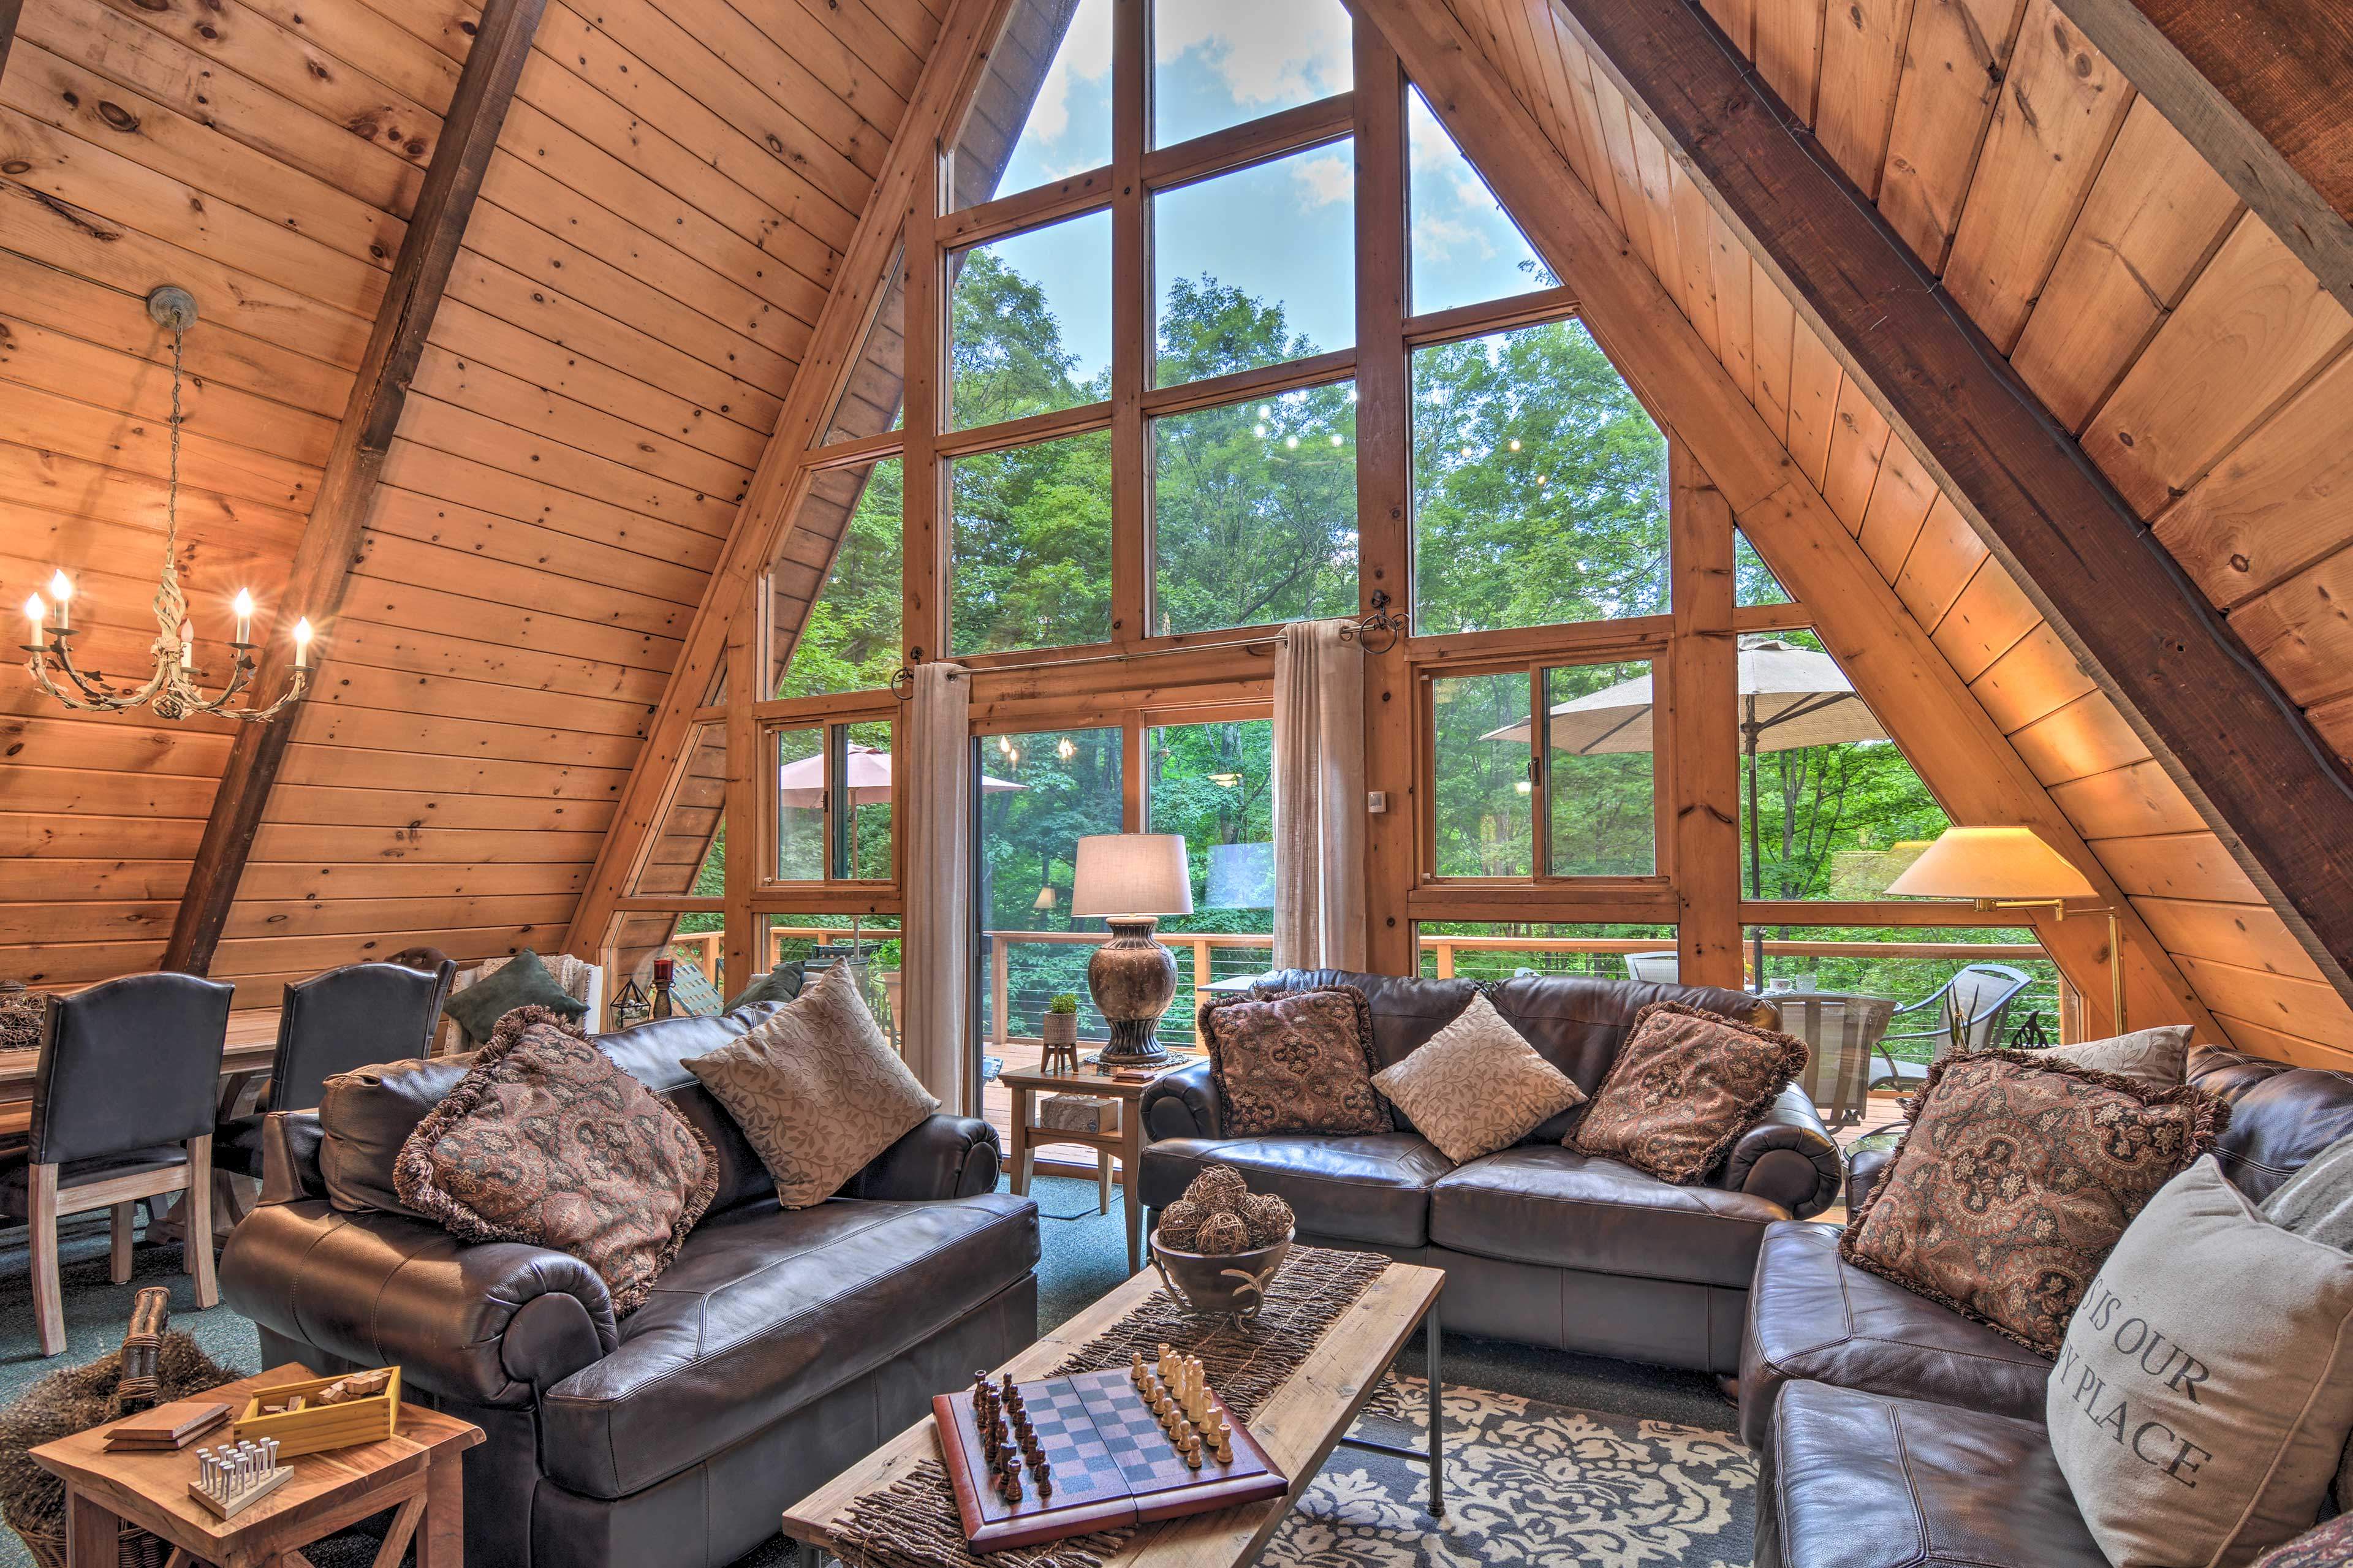 Stay at this unique, A-frame vacation rental on your next trip Up North!